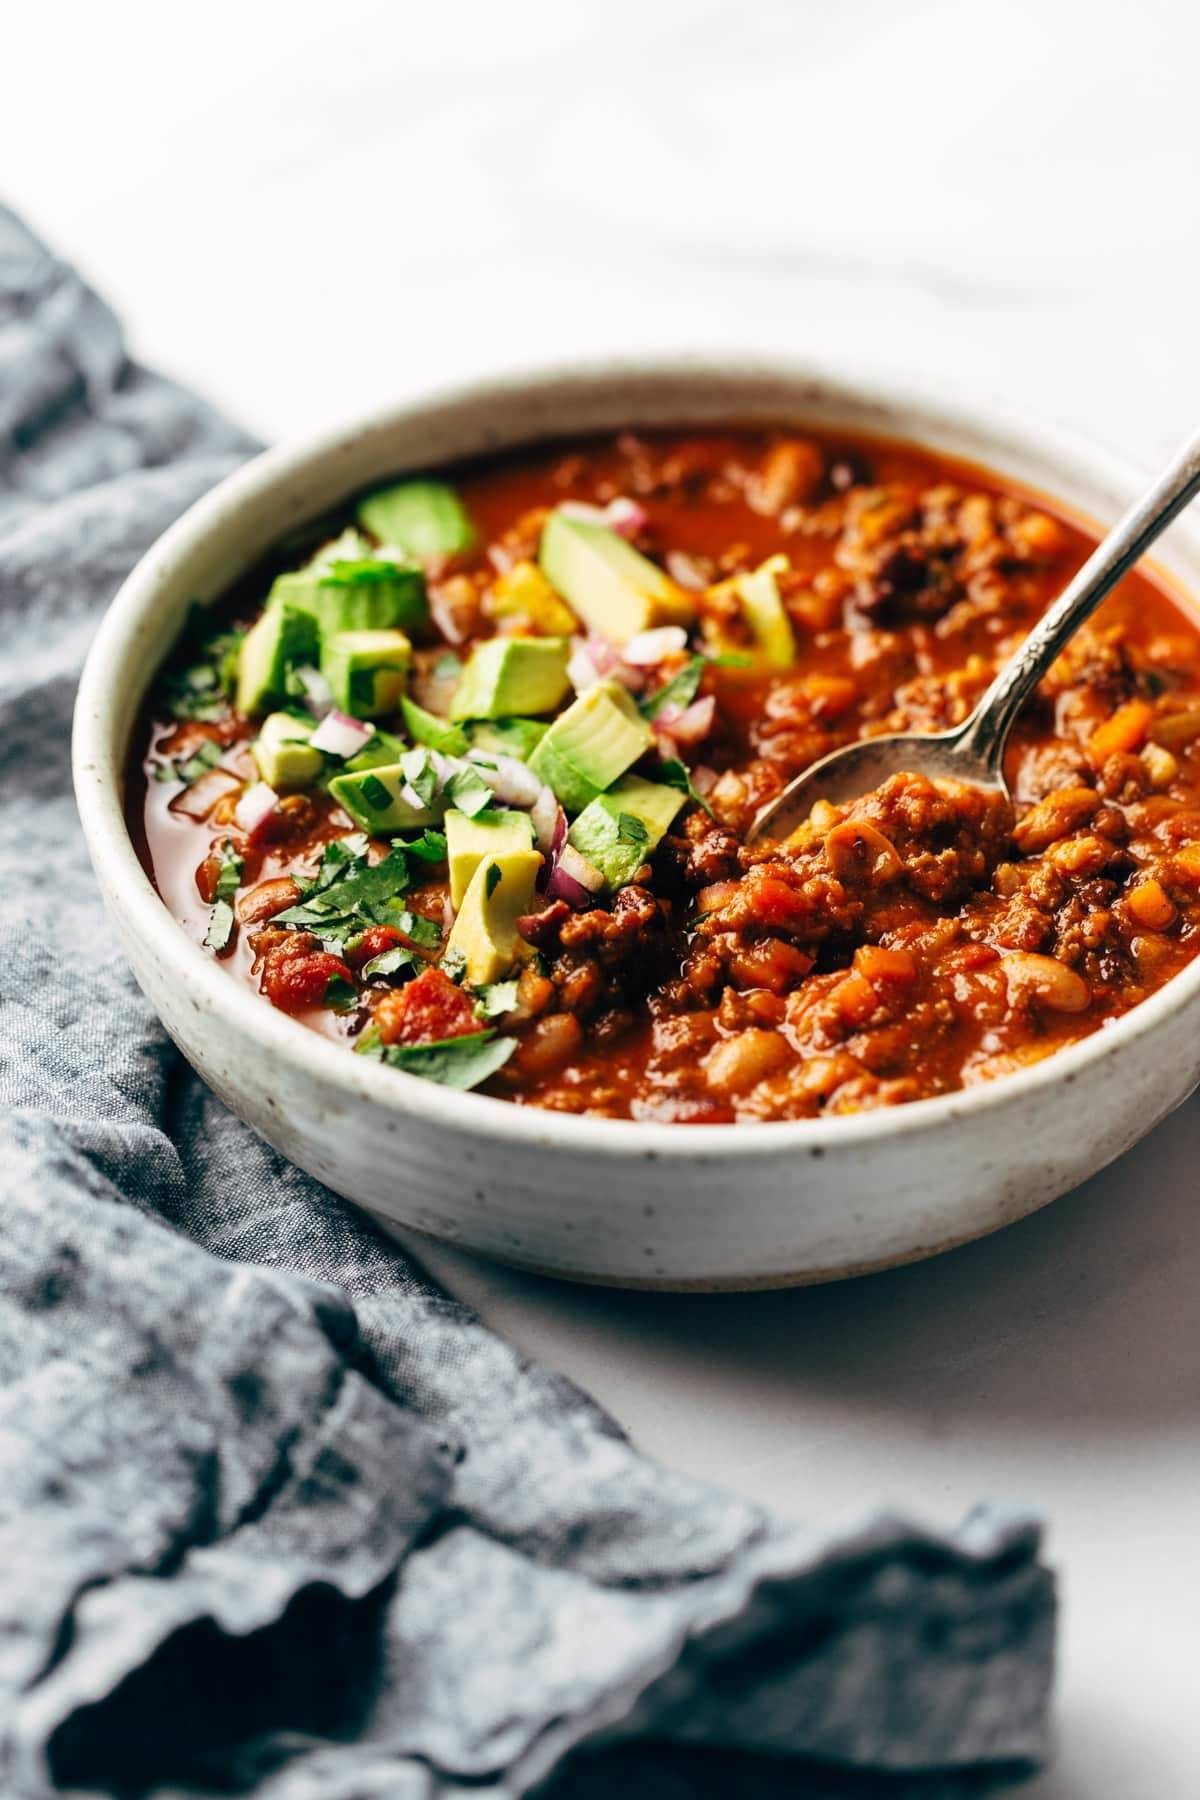 Sunday chili in a bowl with a spoon.